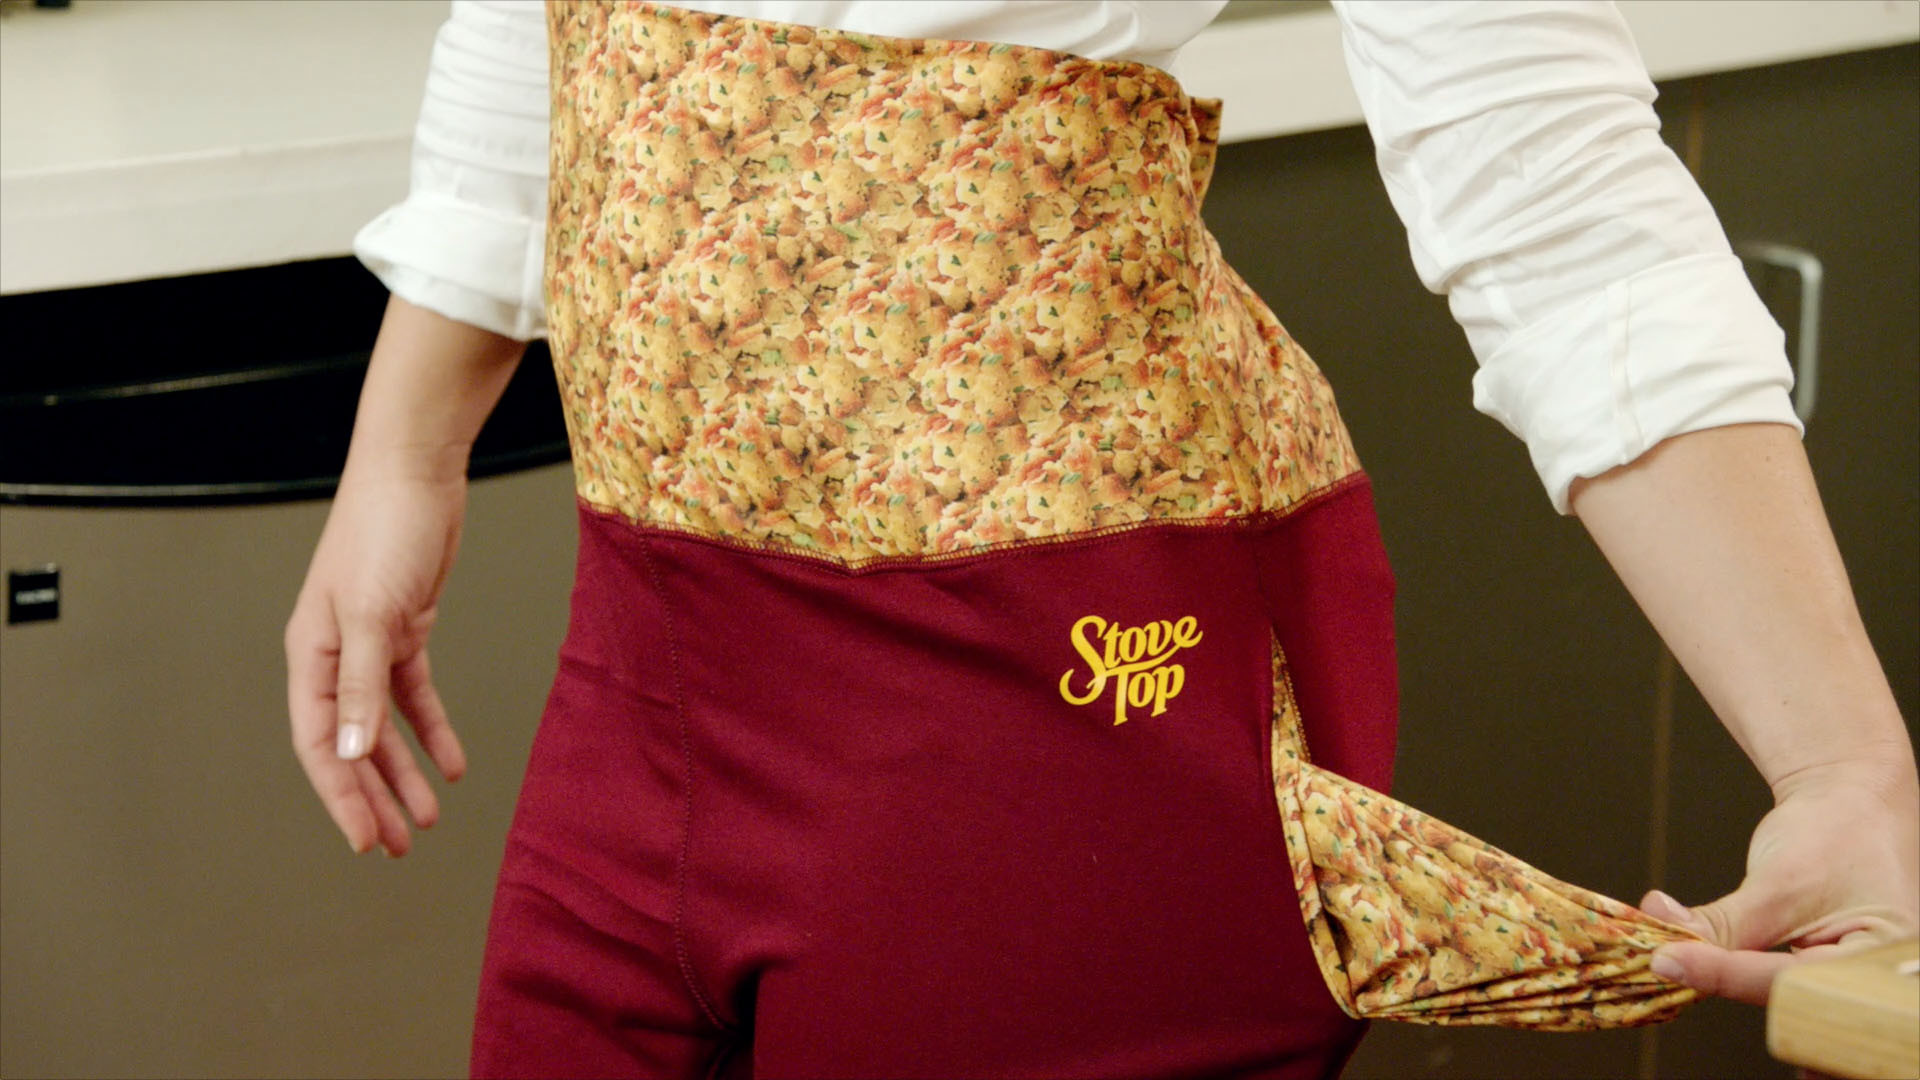 Stove Top Stuffing Is Now Selling Stretchy Pants You Can Shamelessly Wear on Thanksgiving